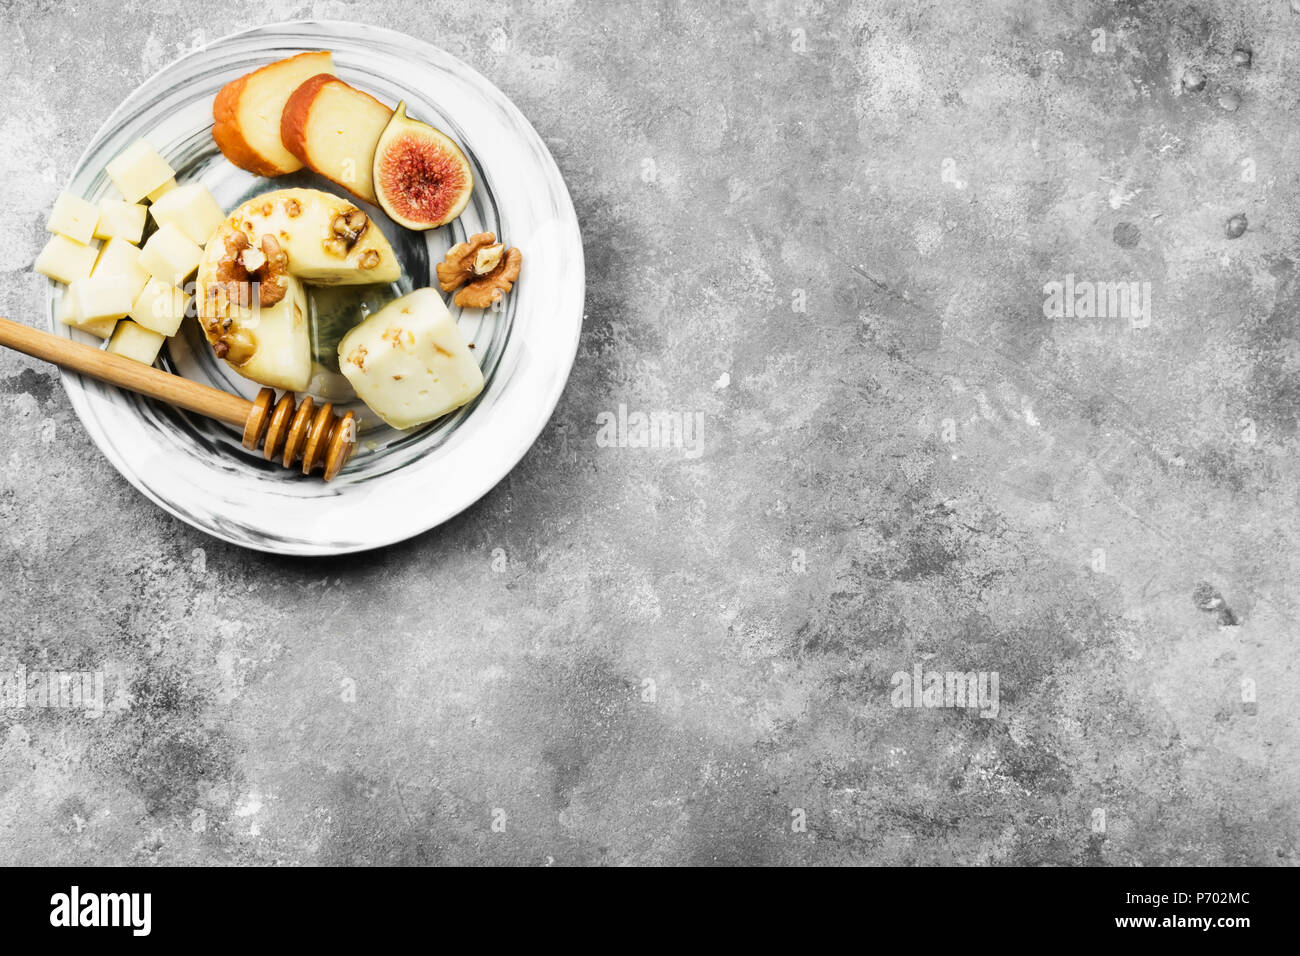 Snacks with wine - various types of cheeses, figs, nuts, honey on a gray background. Top view, copy space. Food background Stock Photo